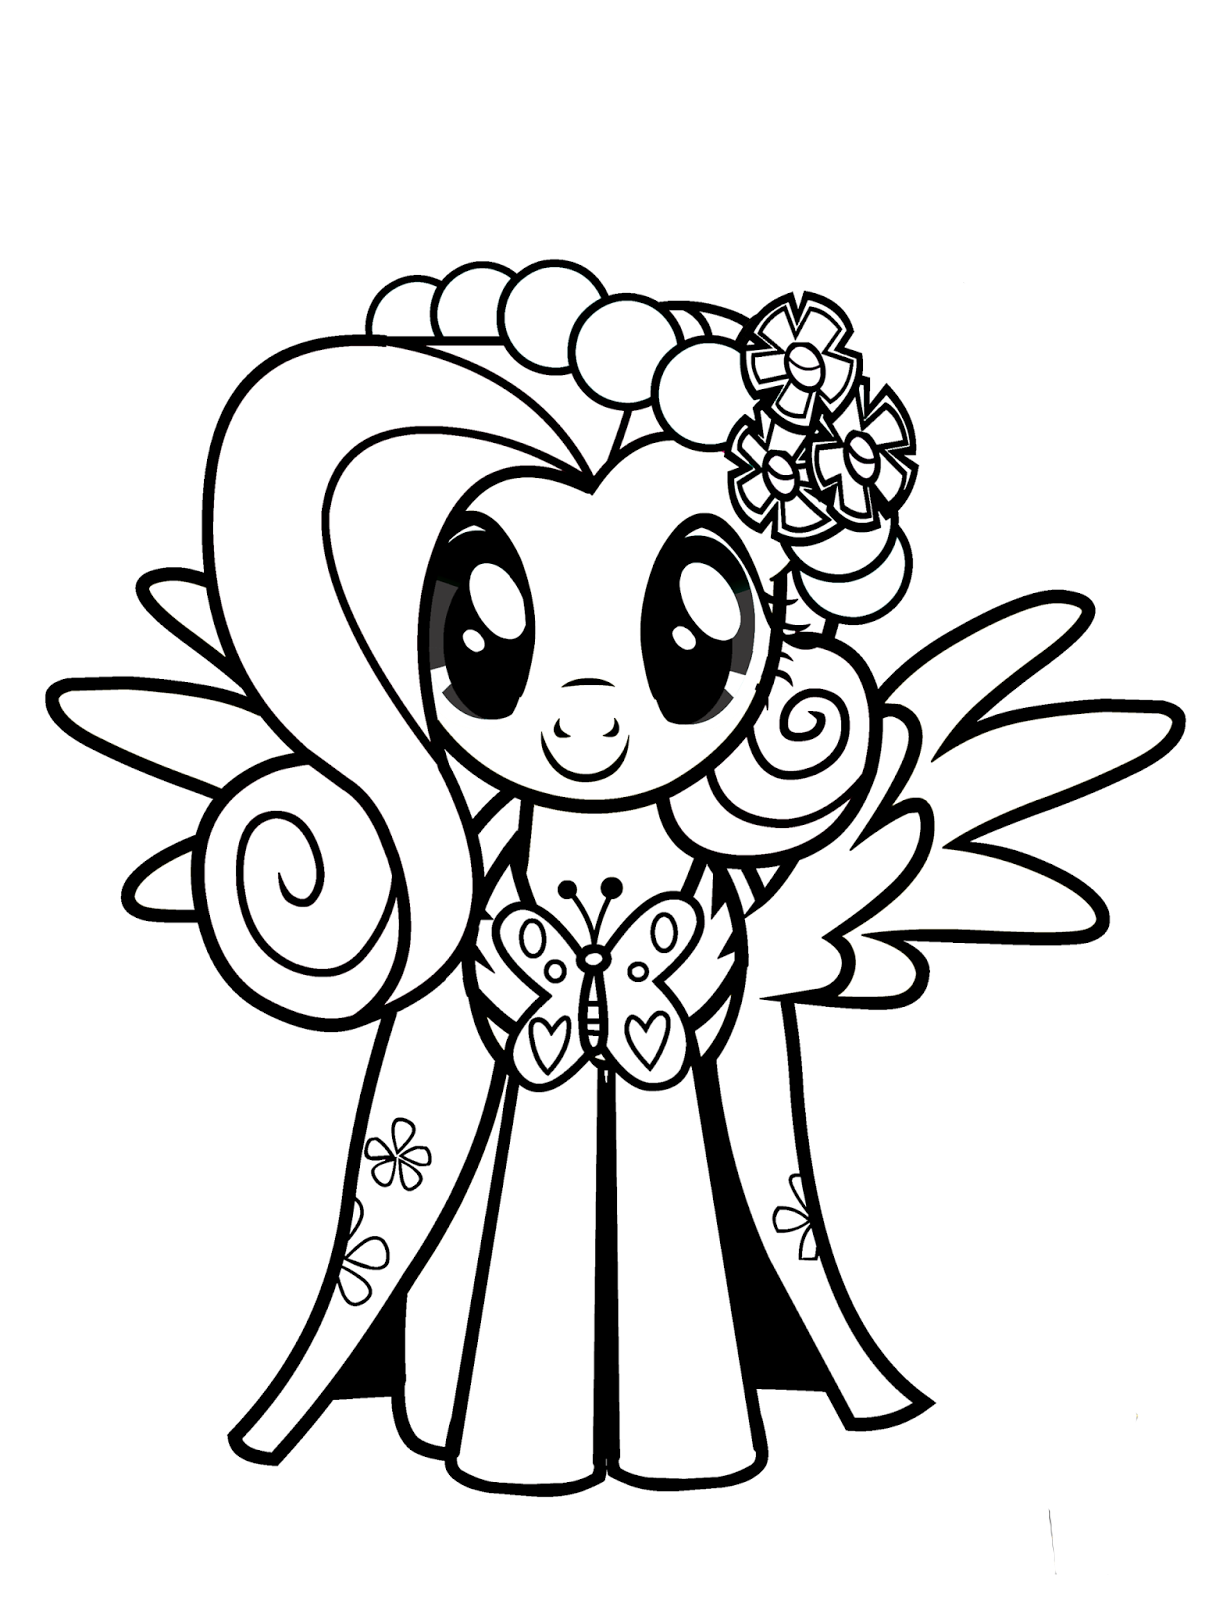 my little pony picture to color my little pony fluttershy coloring page free printable picture color pony my little to